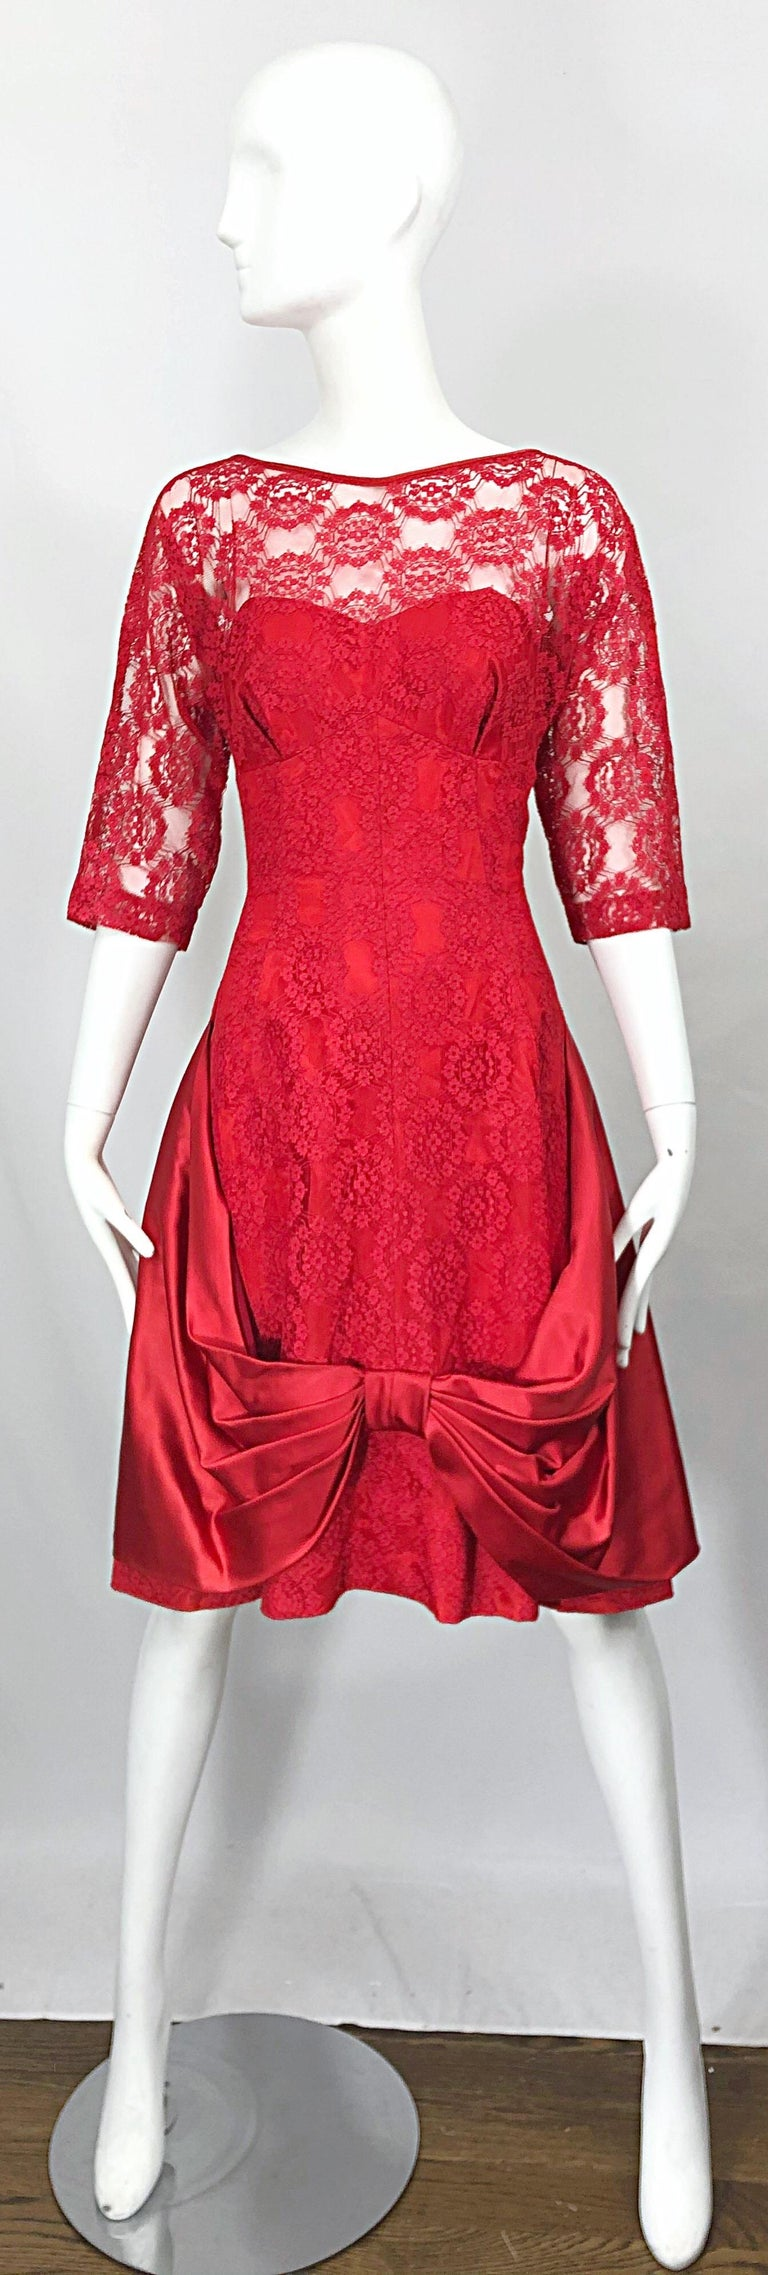 Incredible 1950s demi couture lipstick red silk lace fit n' flare cocktail dress! Features silk taffeta with red lace overlay. Large satin bow detail at center front hem. Fitted tailored bodice with a forgiving full skirt. Hidden metal zipper up the